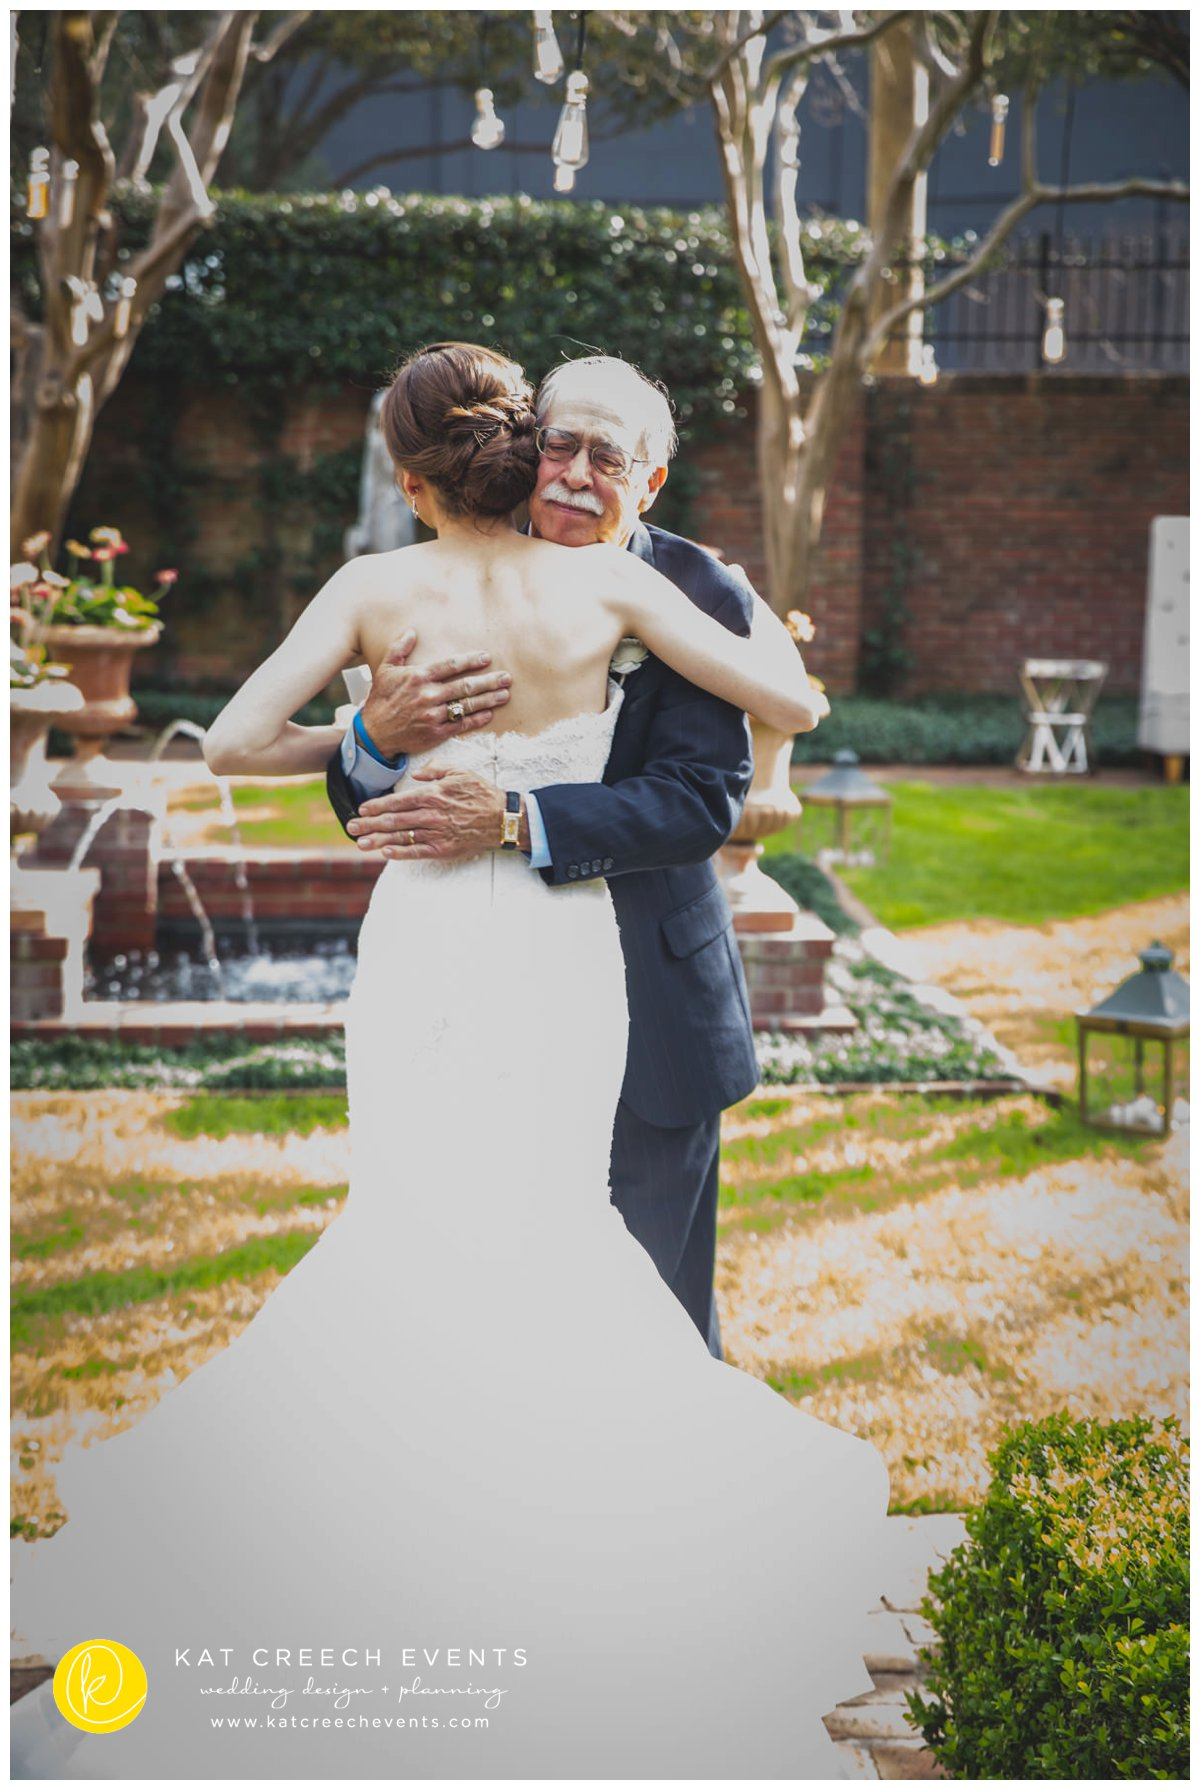 father and bride first look | wedding moments | Kat Creech Events